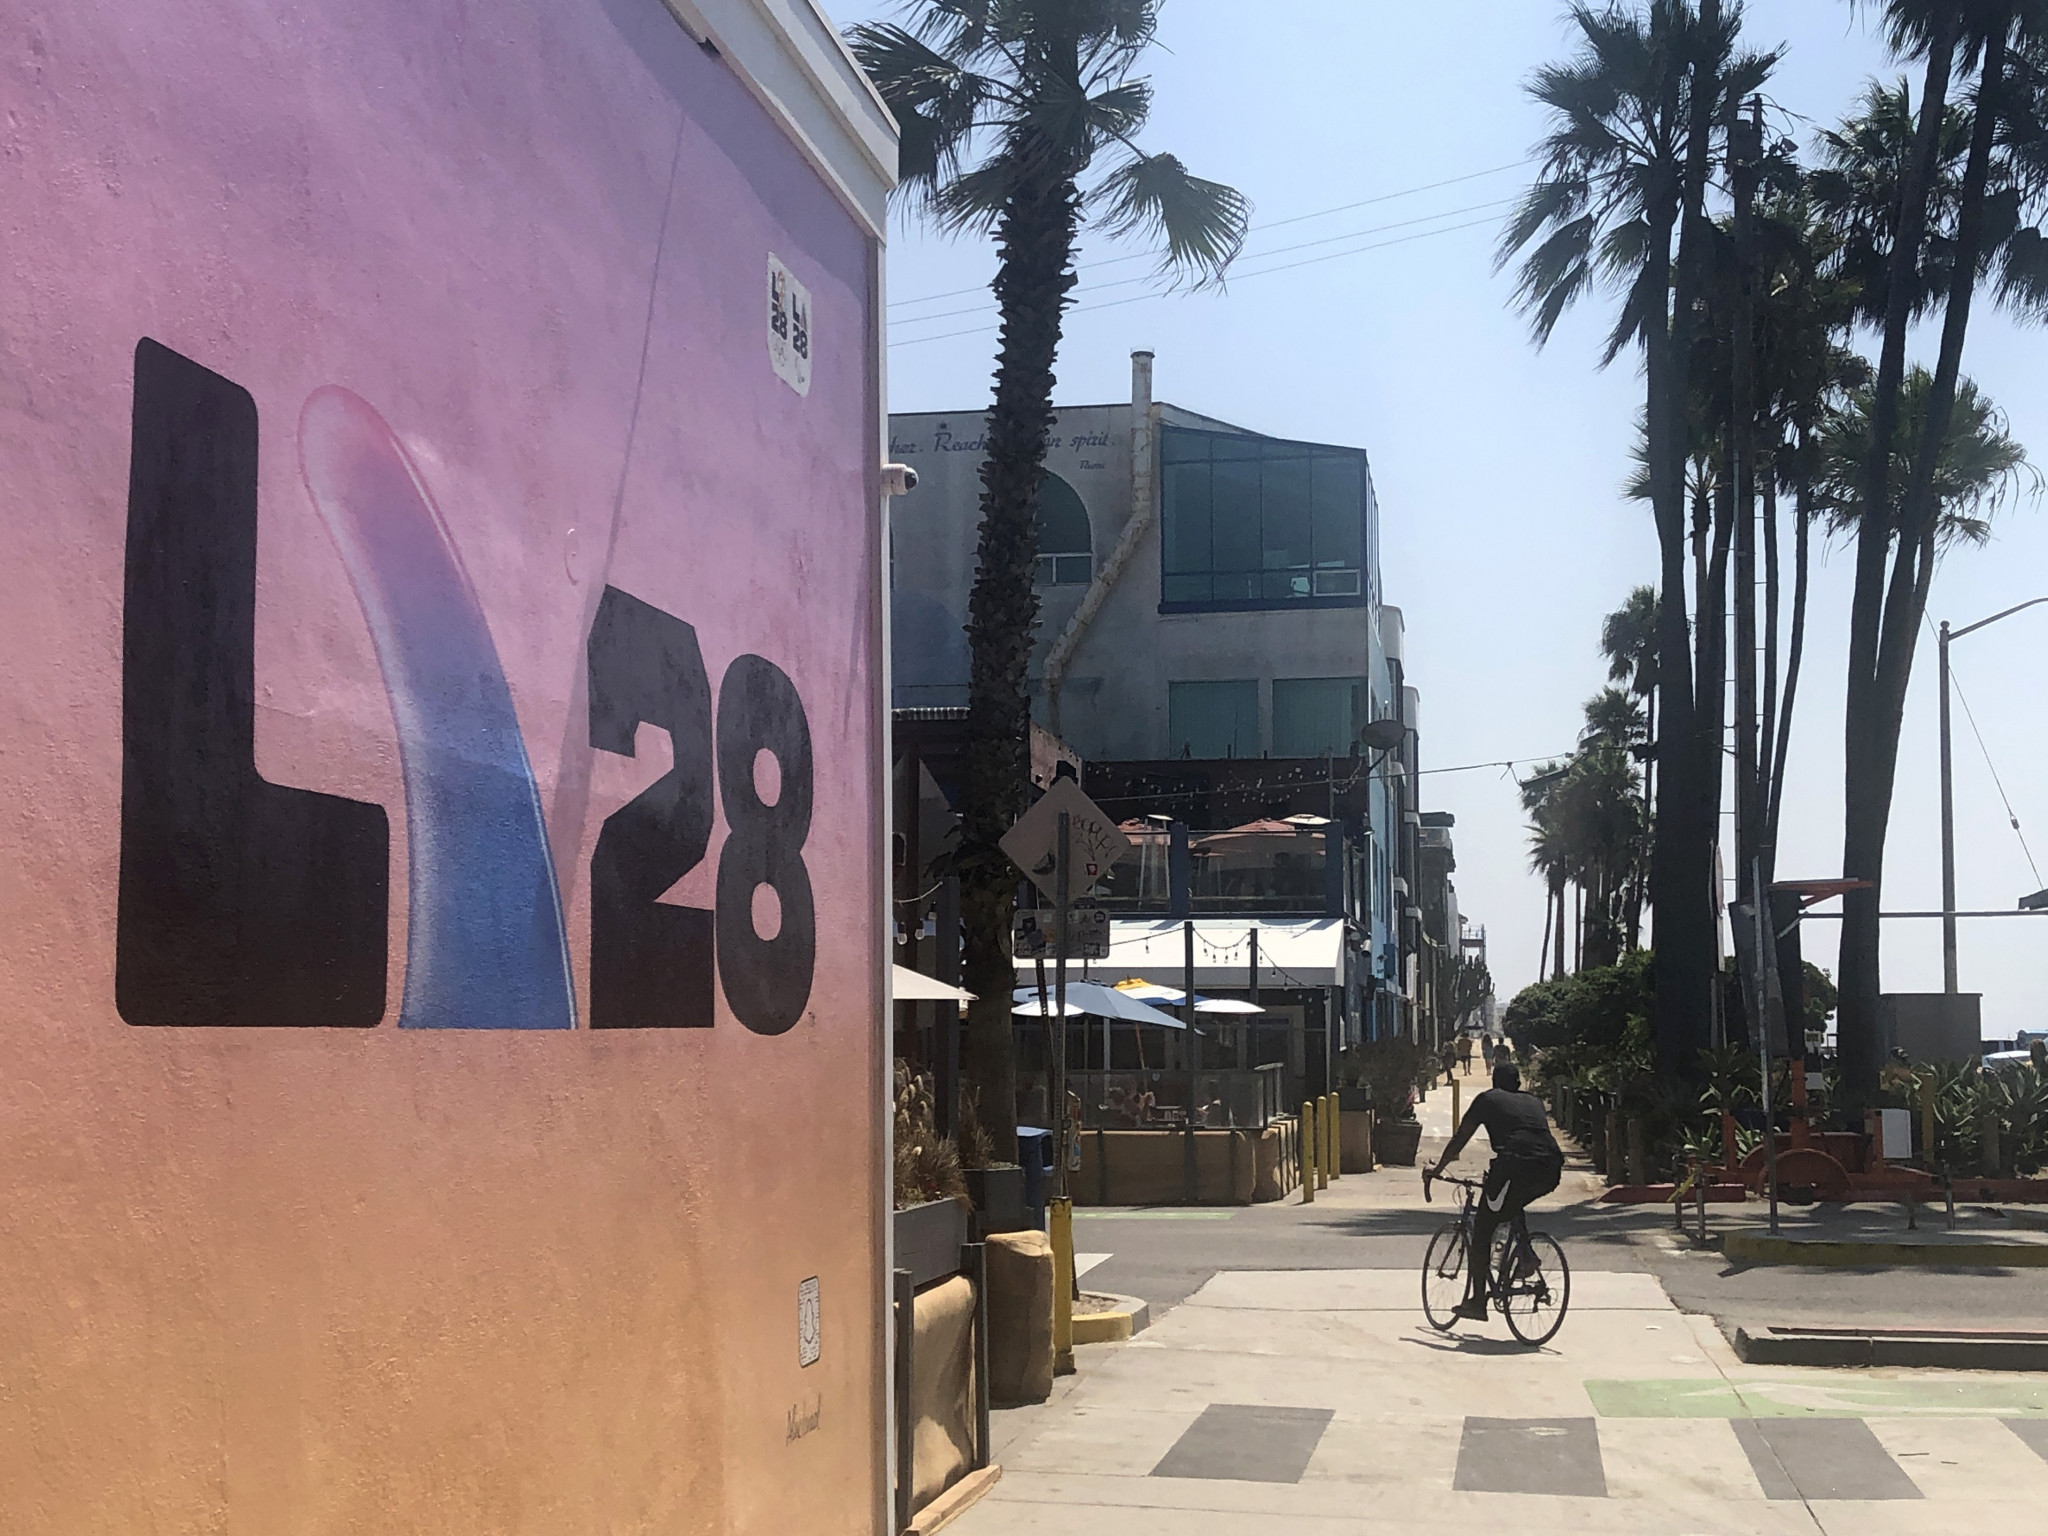 Los Angeles 2028 chief executive Kathy Carter is confident the Games will be delivered